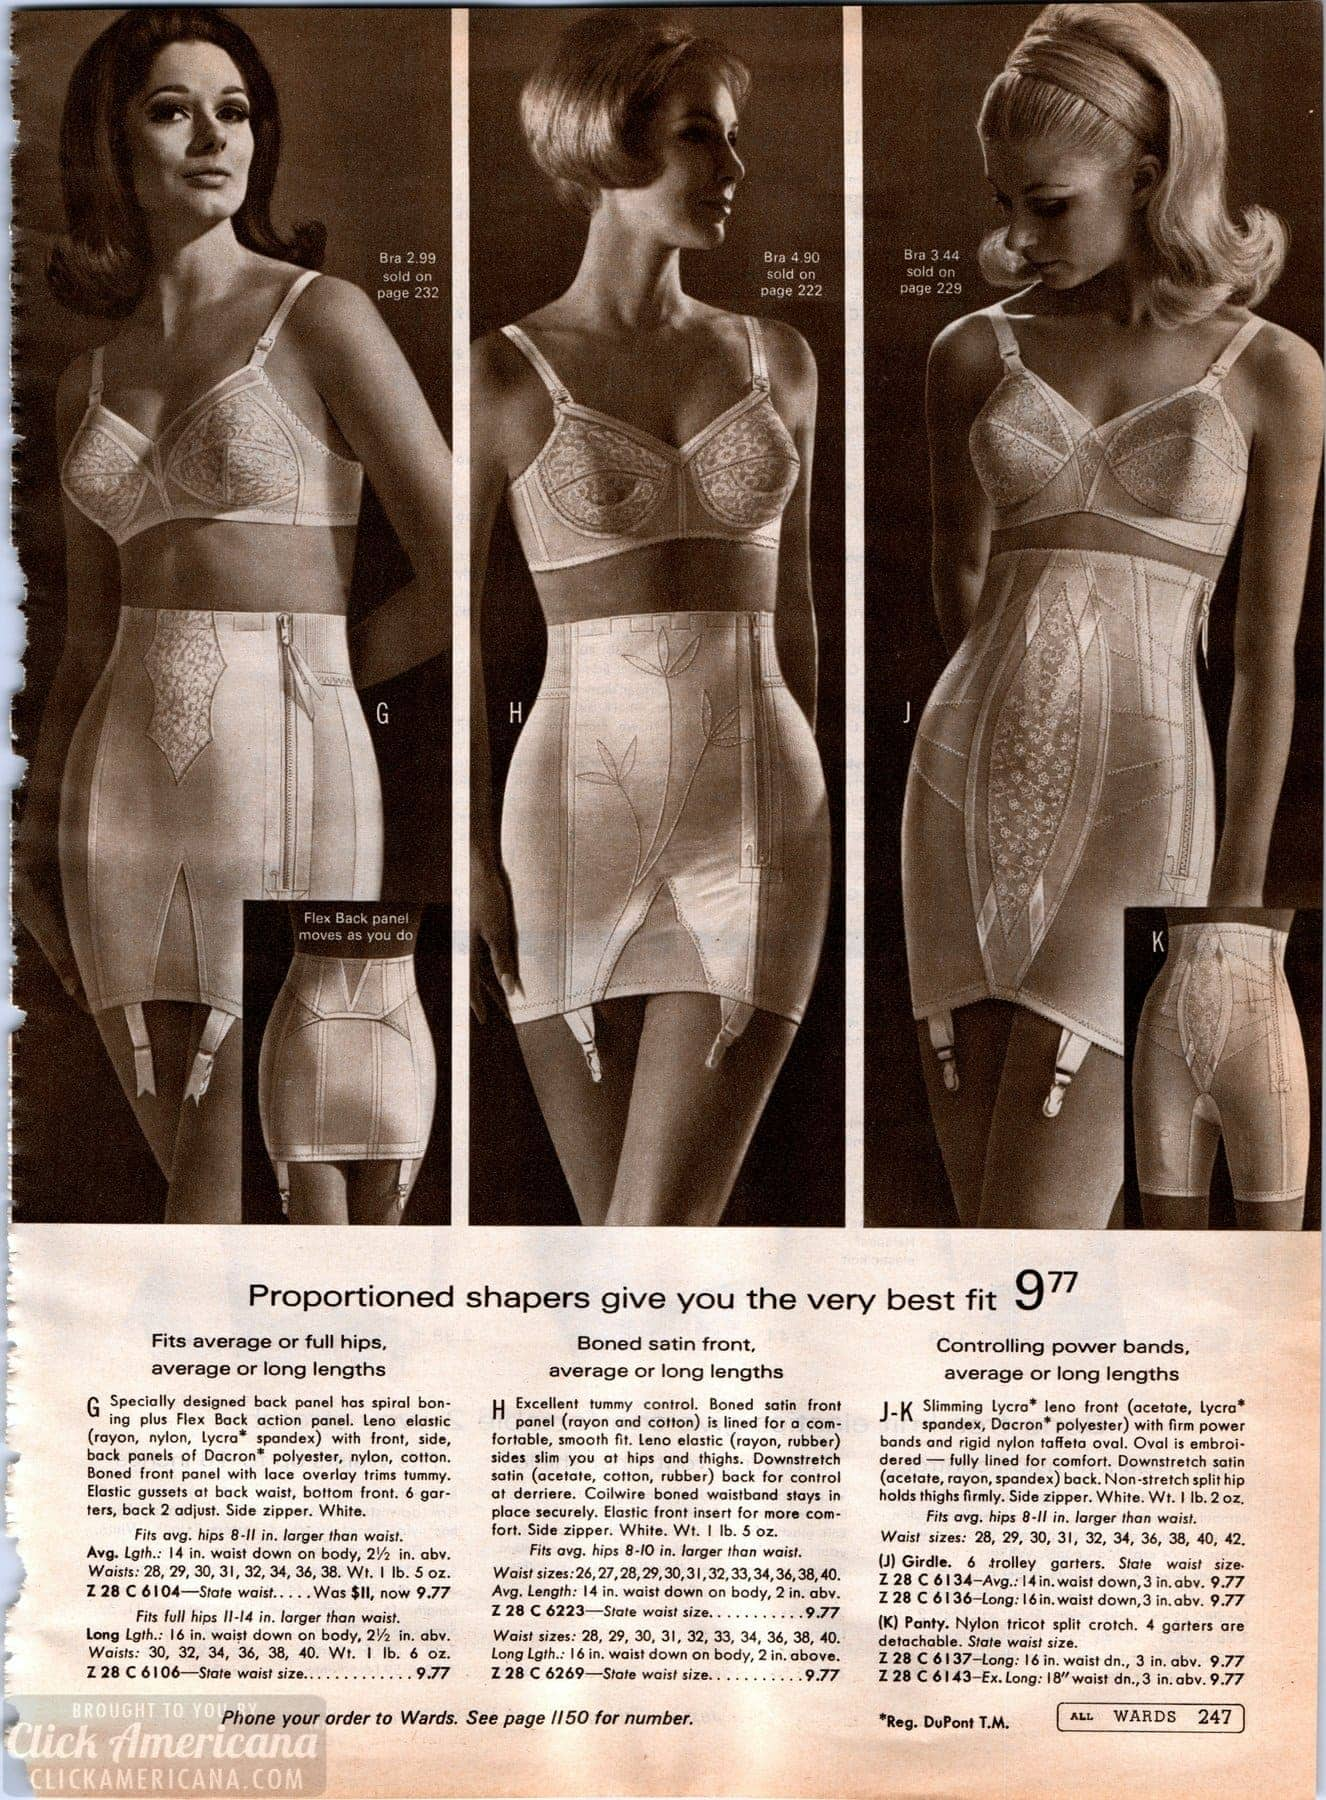 Vintage bras and tummy-control shapers from 1968